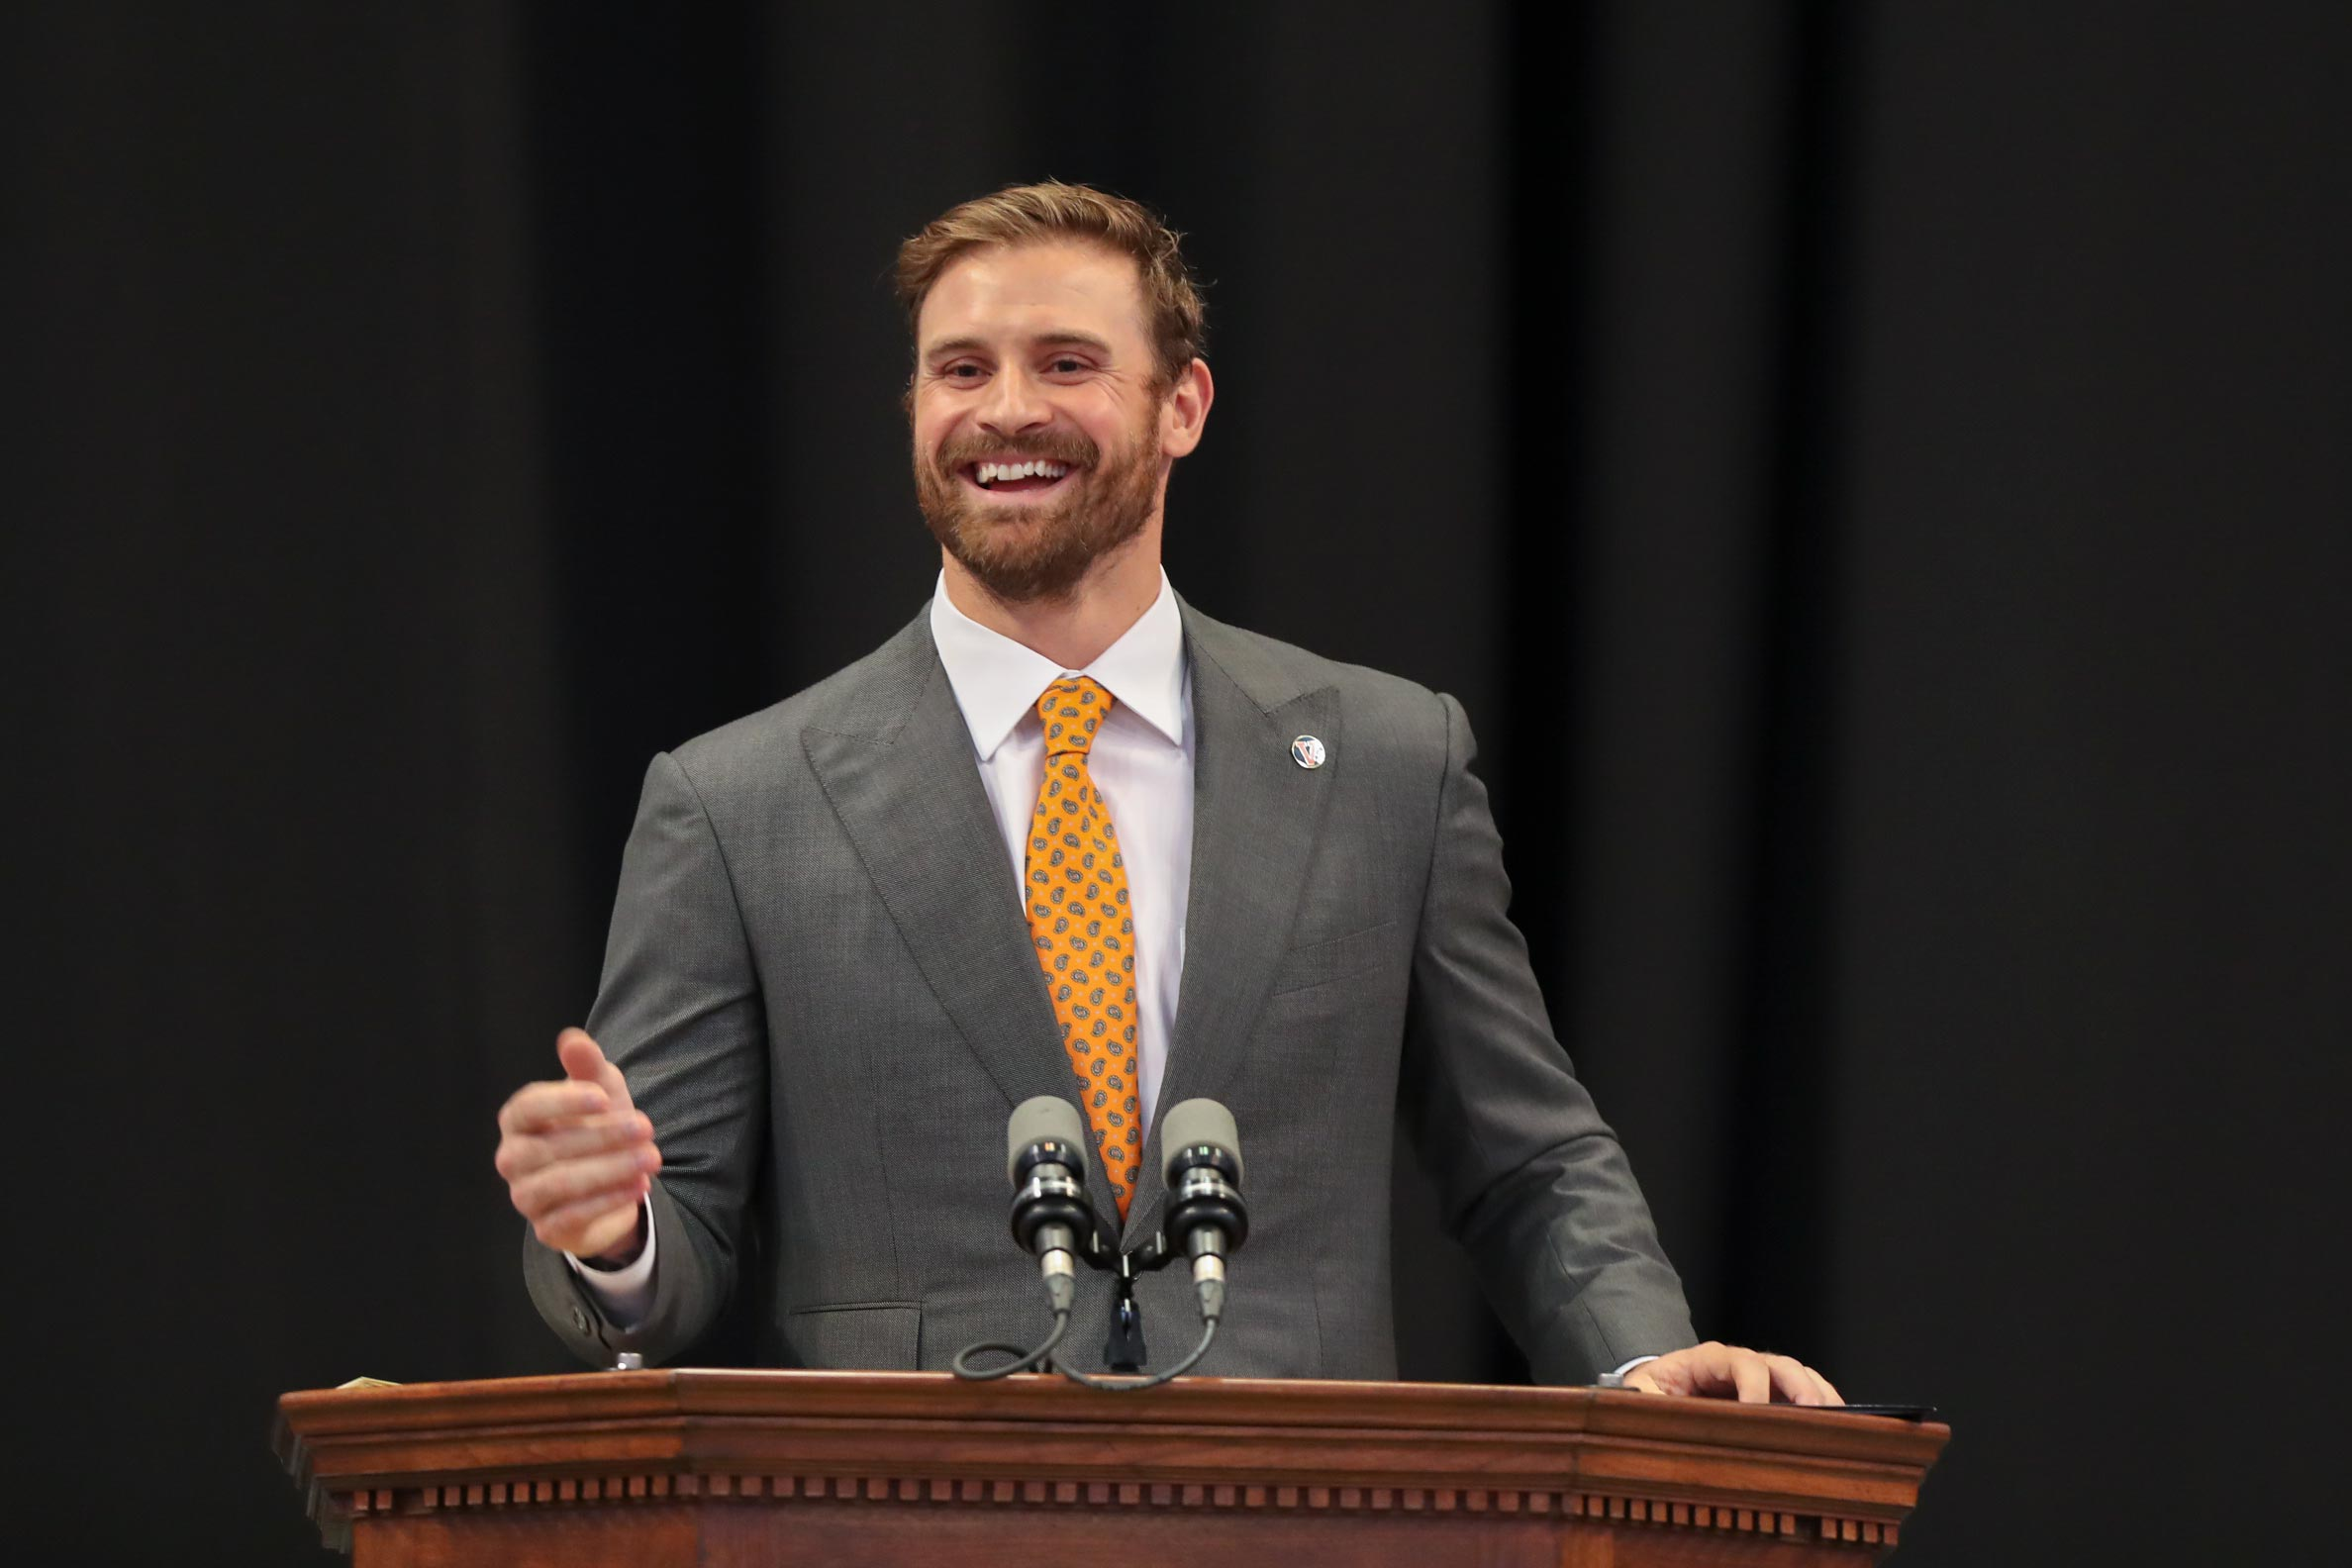 """Chris Long said UVA encouraged him """"to be a complete human being, not just what I do for a living."""""""